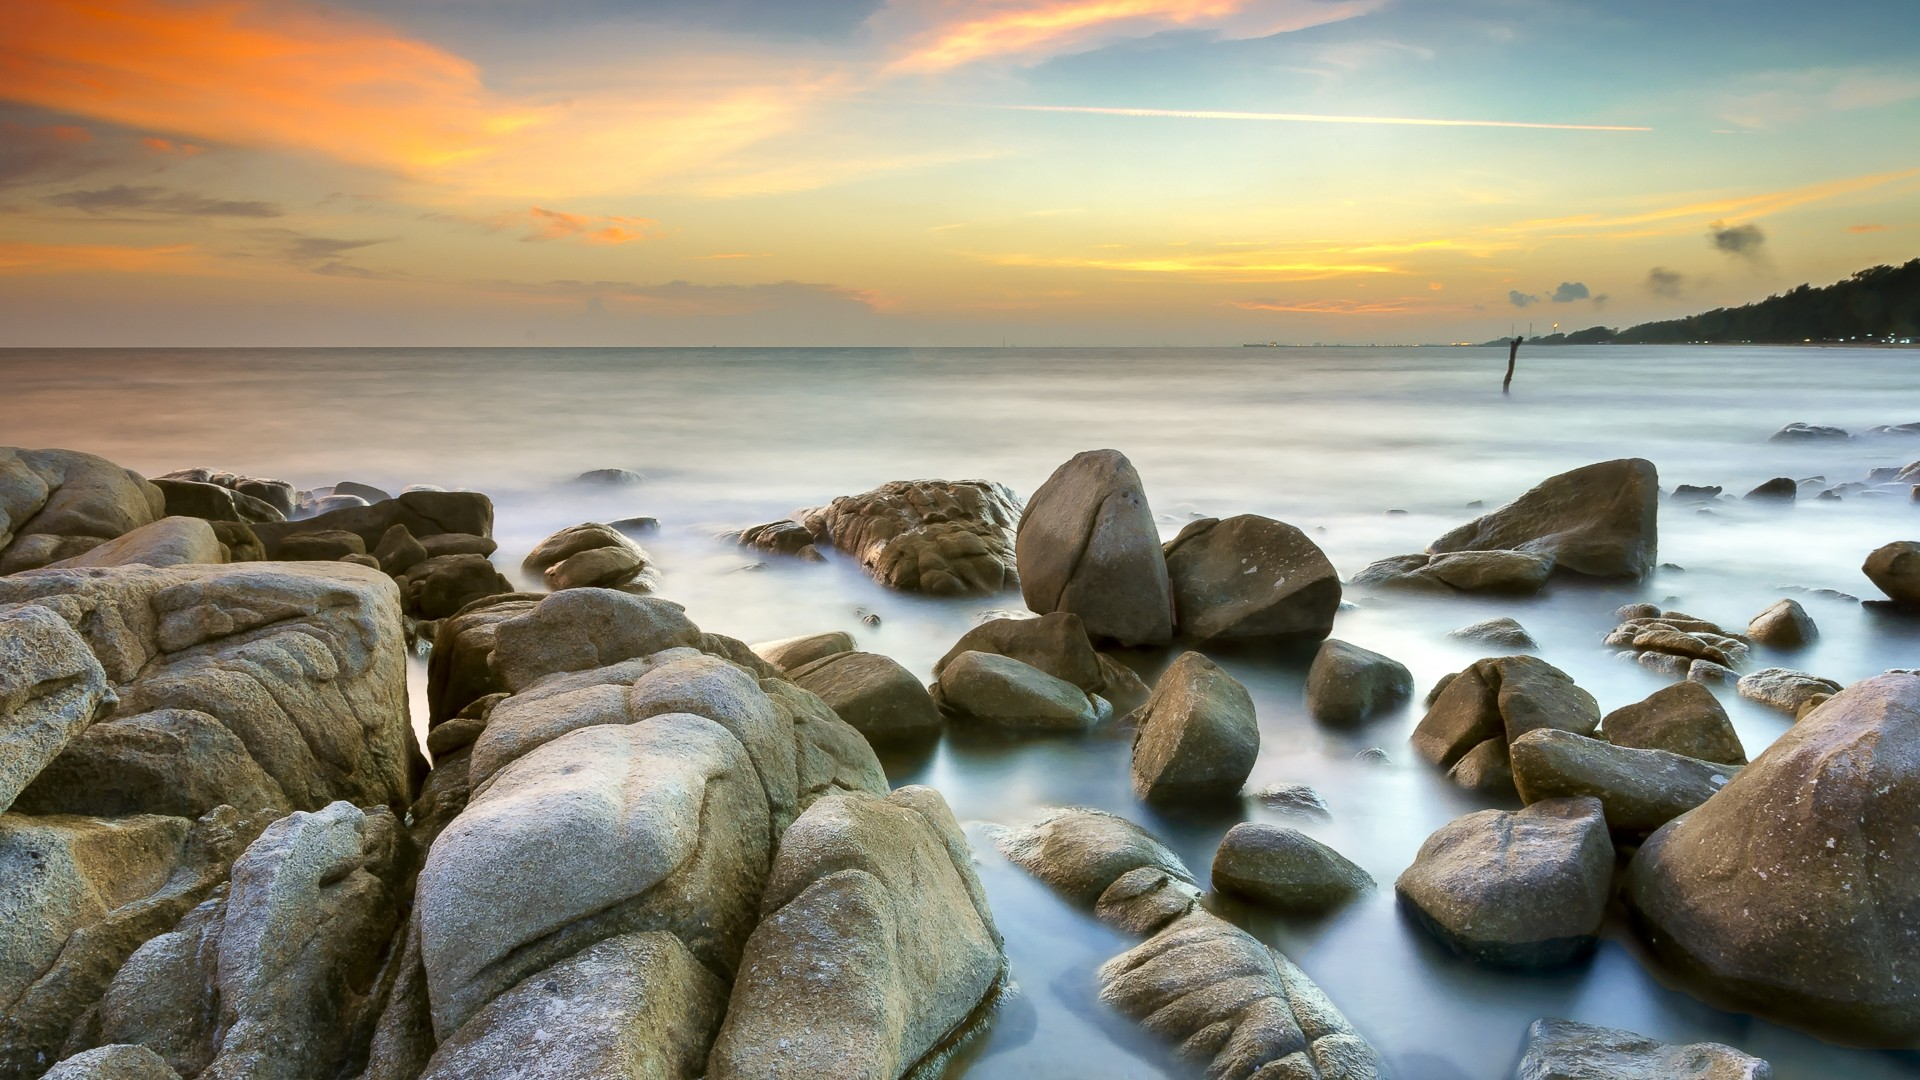 General 1920x1080 landscape sea rocks orange sky